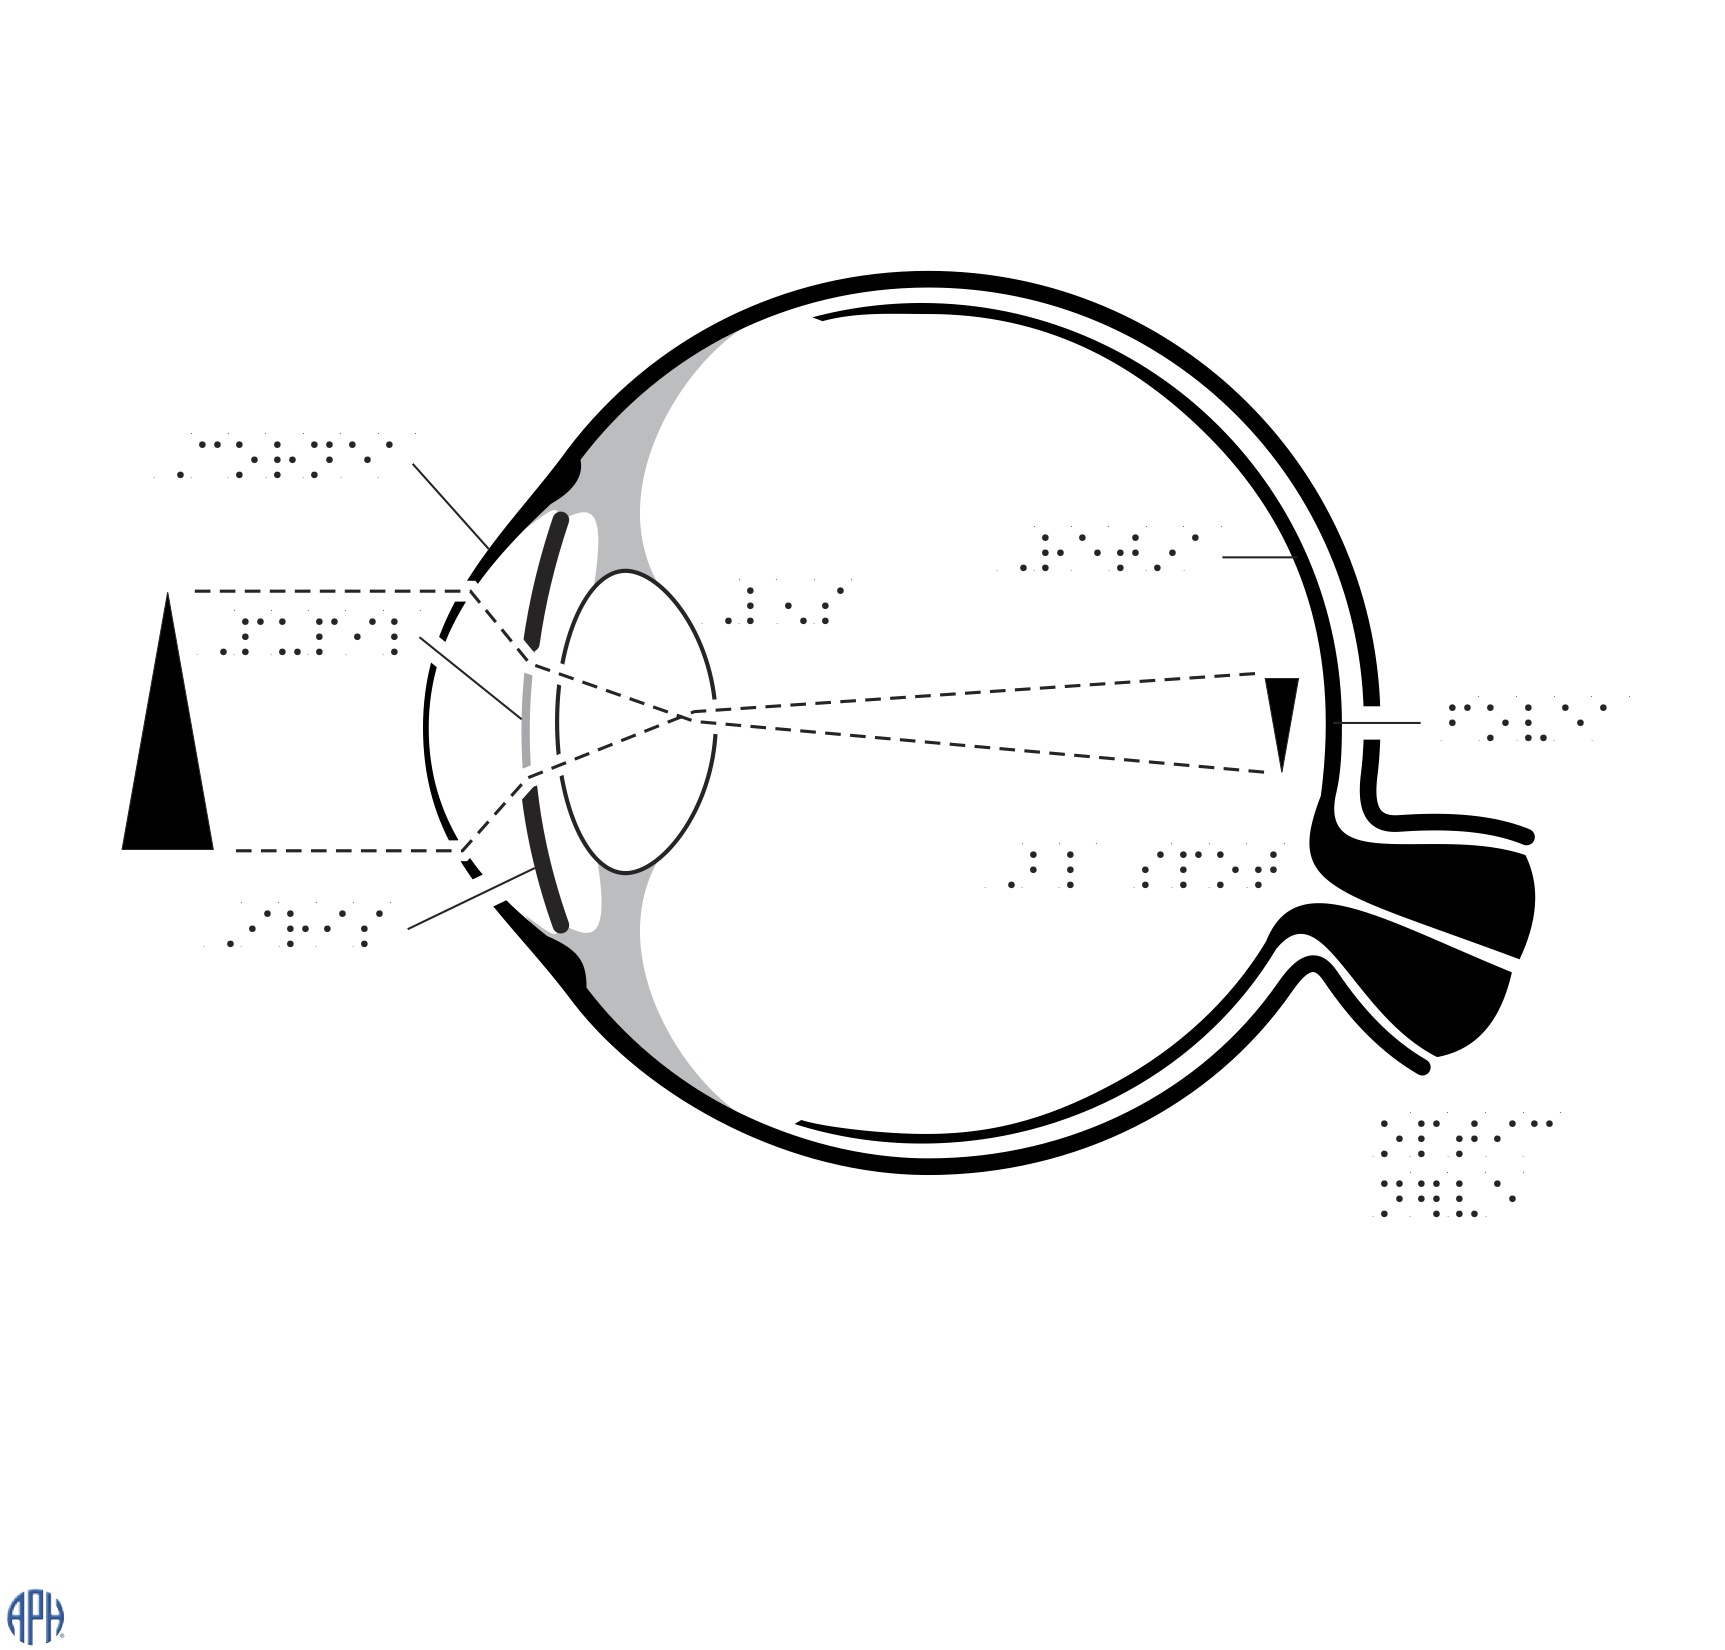 Braille labelled sketch of an eye with the pupil, lens, iris, cornea, optic nerve, shows how an image is inverted at the back of the retina.